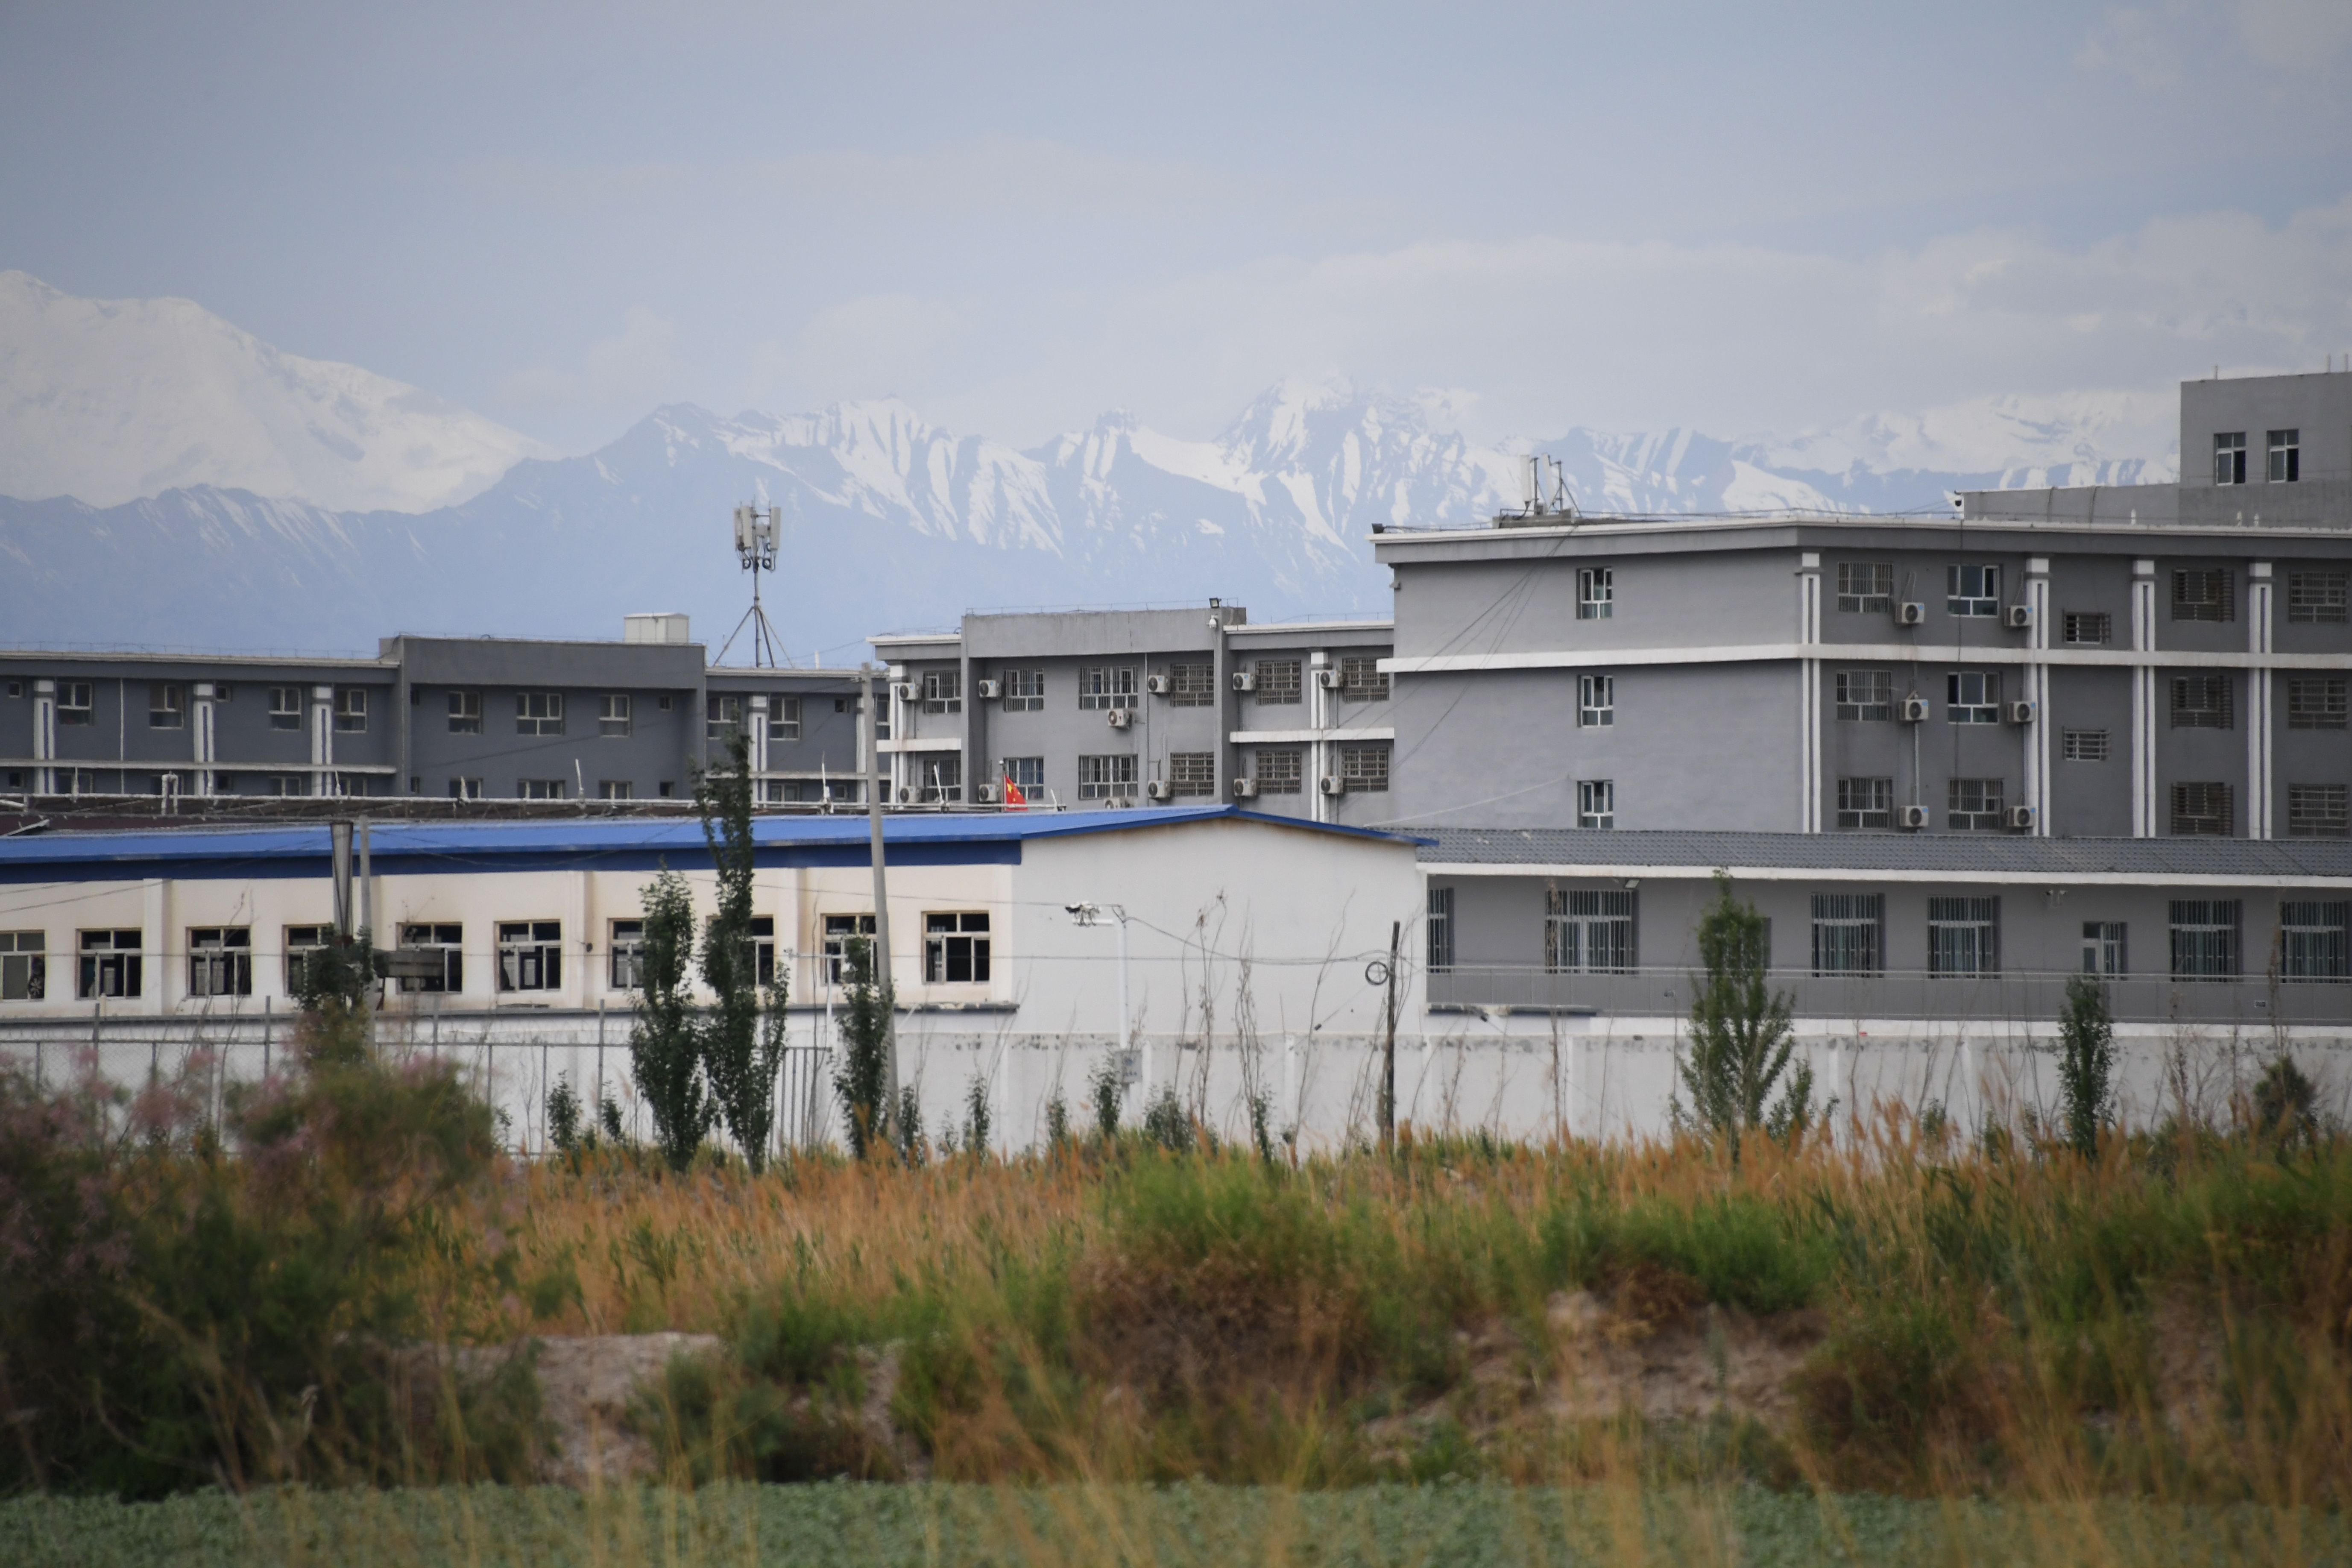 This photo taken on June 4, 2019 shows a facility believed to be a re-education camp where mostly Muslim ethnic minorities are detained, north of Akto in China's northwestern Xinjiang region.